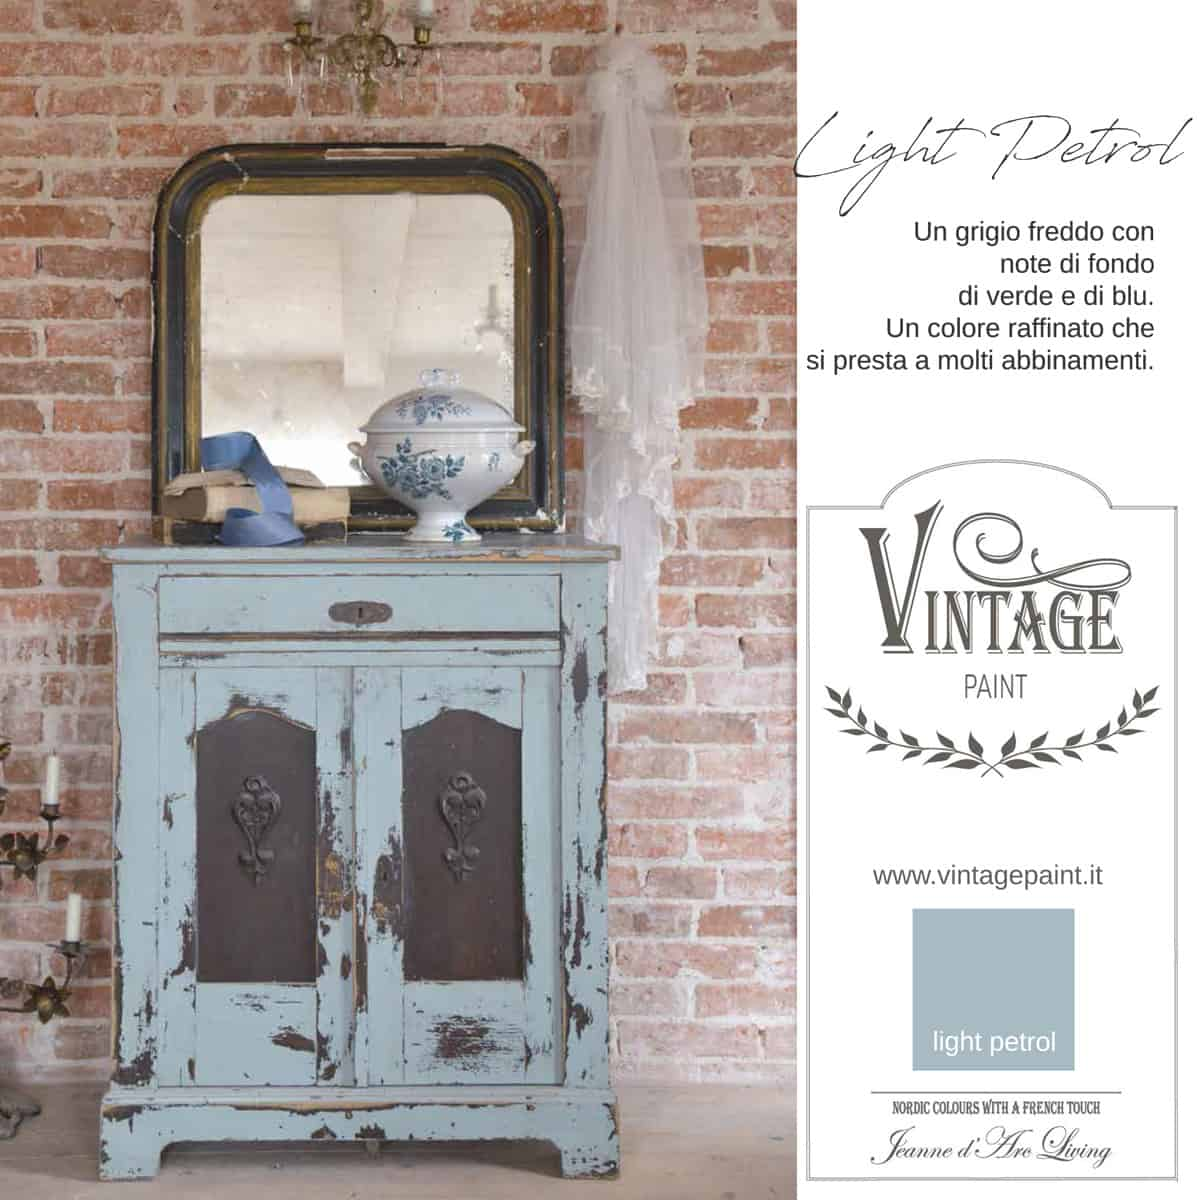 light petrol azzurro vintage chalk paint vernici shabby chic autentico look gesso